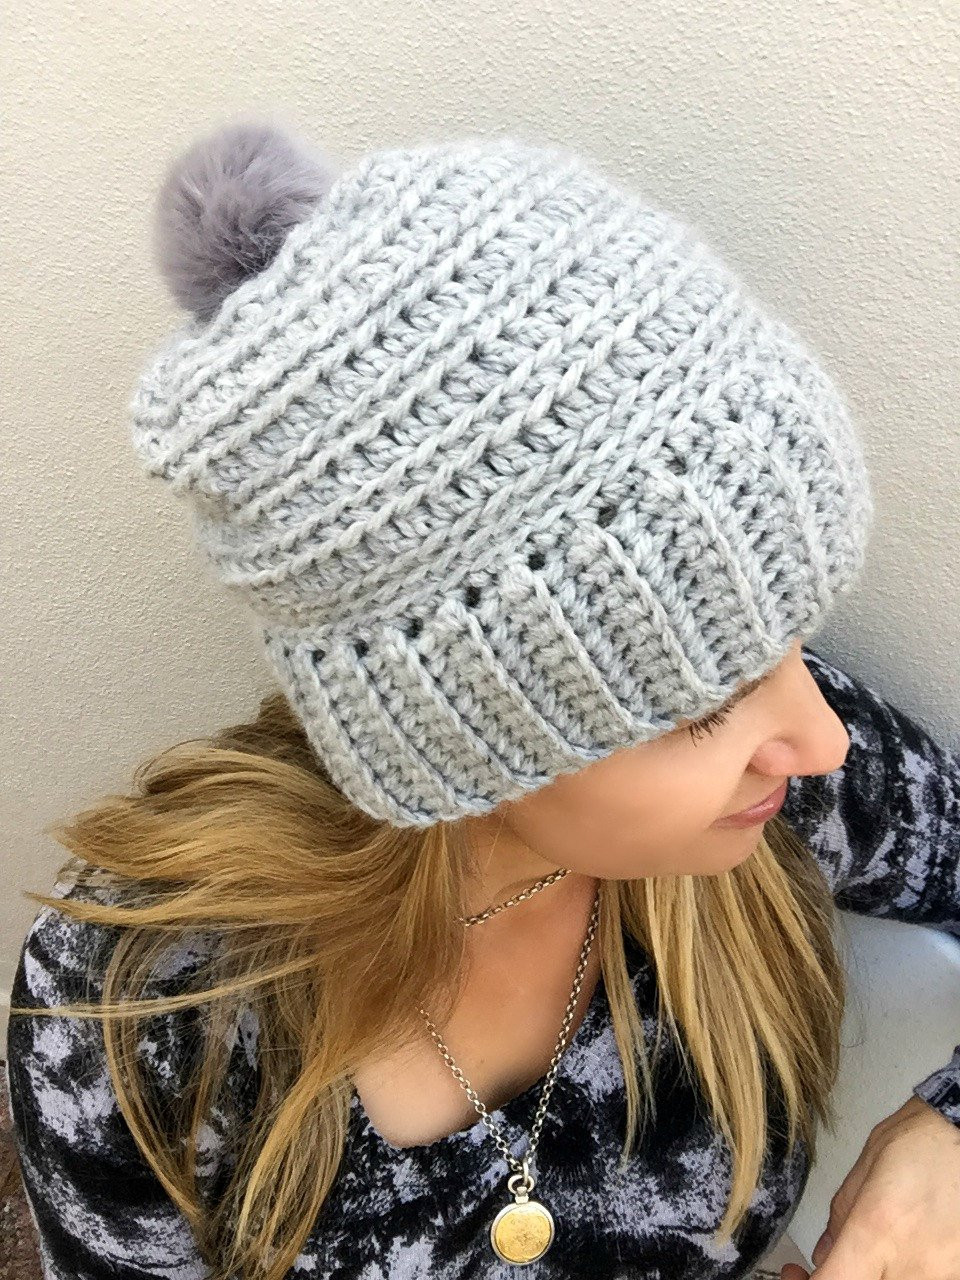 Inspirational Slouchy Ribbed Beanie Pattern for Chunky Yarn Crochet Hat Chunky Crochet Beanie Pattern Of Lovely Crochet Hat Pattern Chunky Back Loop Beanie Uni Chunky Crochet Beanie Pattern